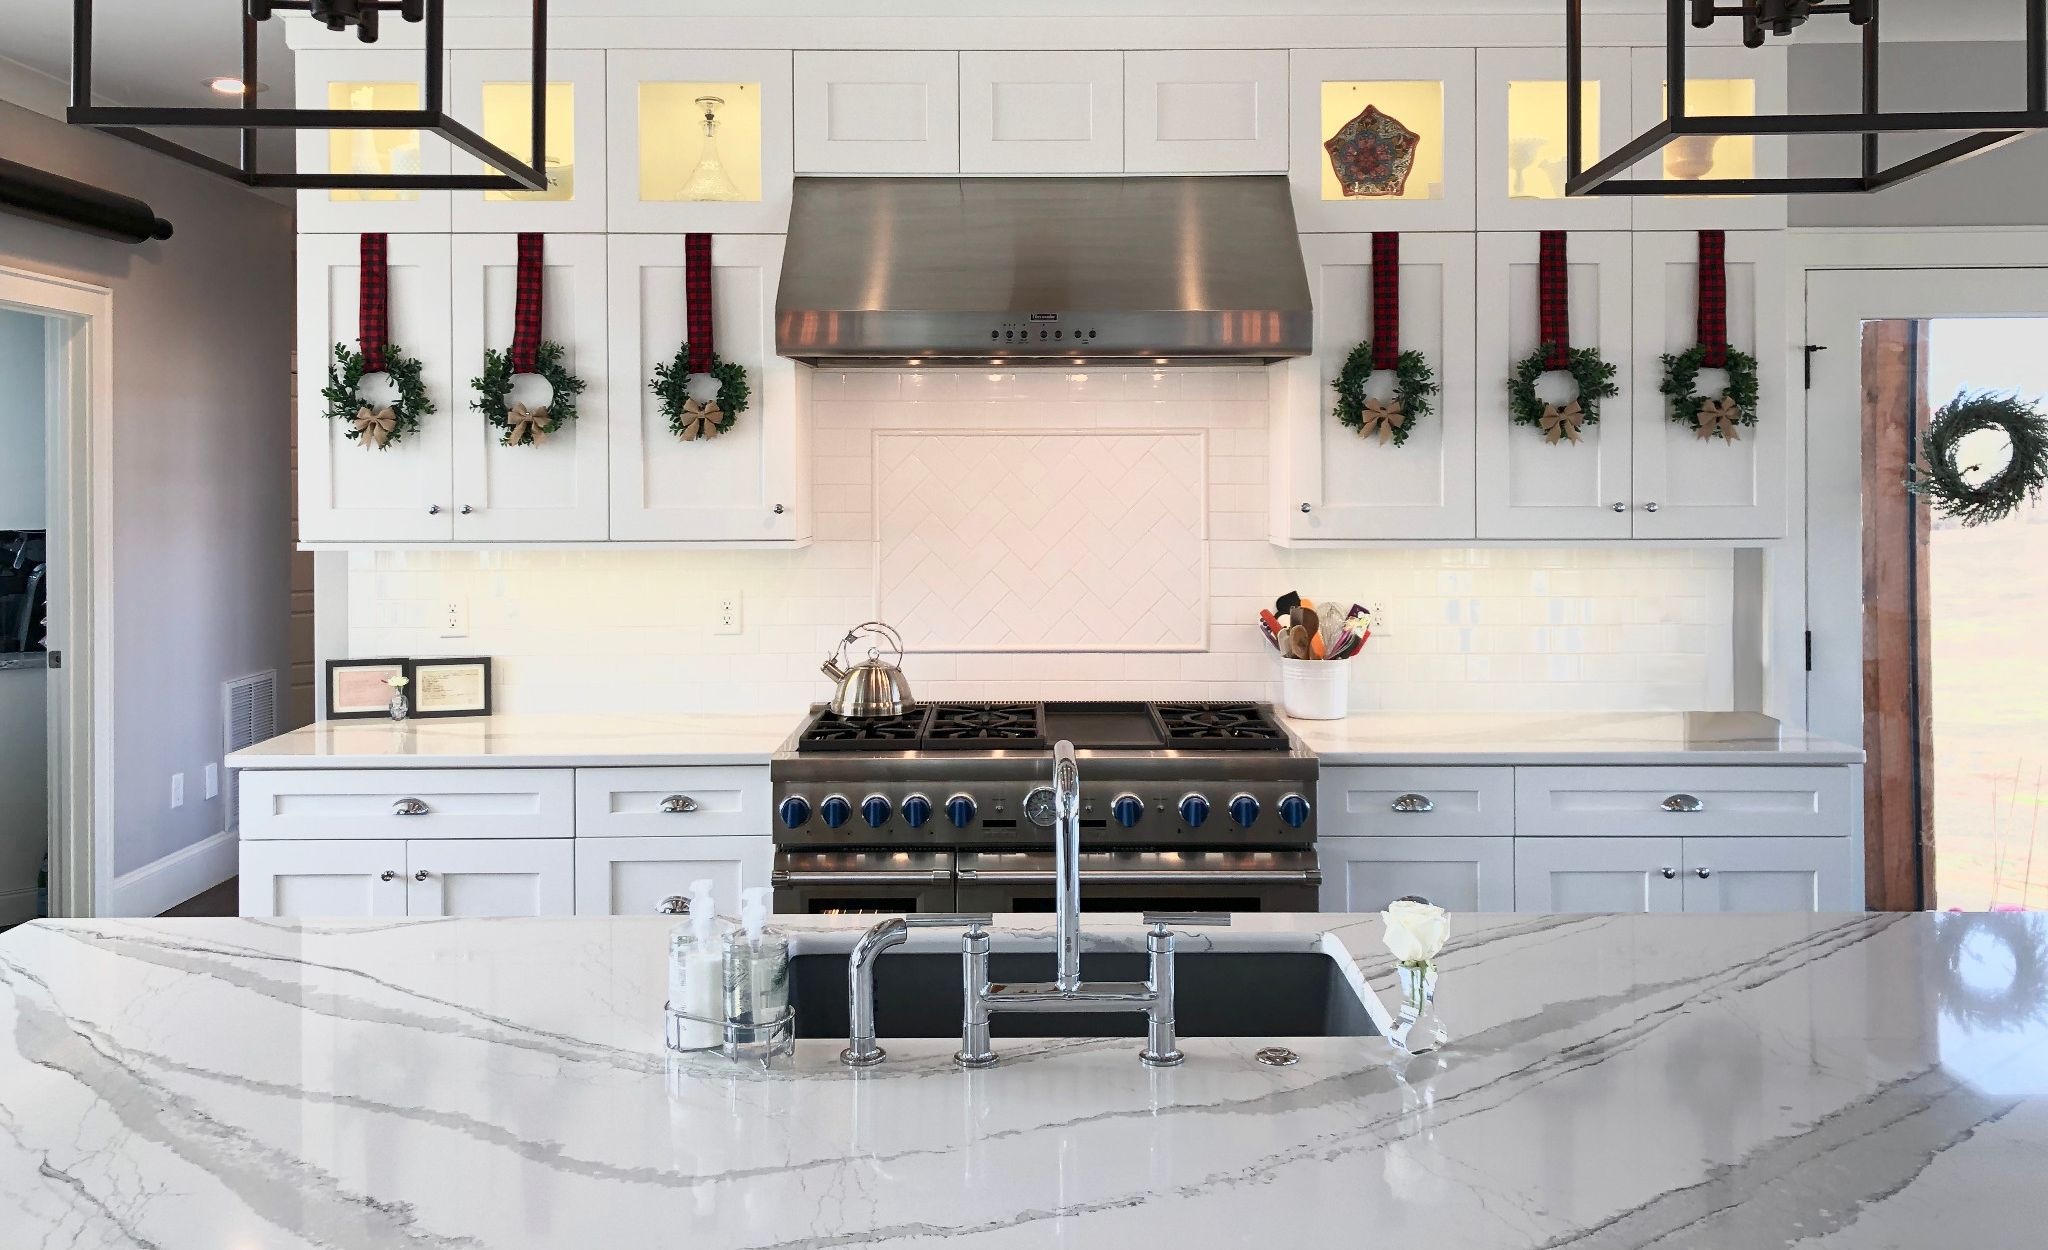 A simple splash of greenery creates Christmas cheer in this Brittanicca kitchen.